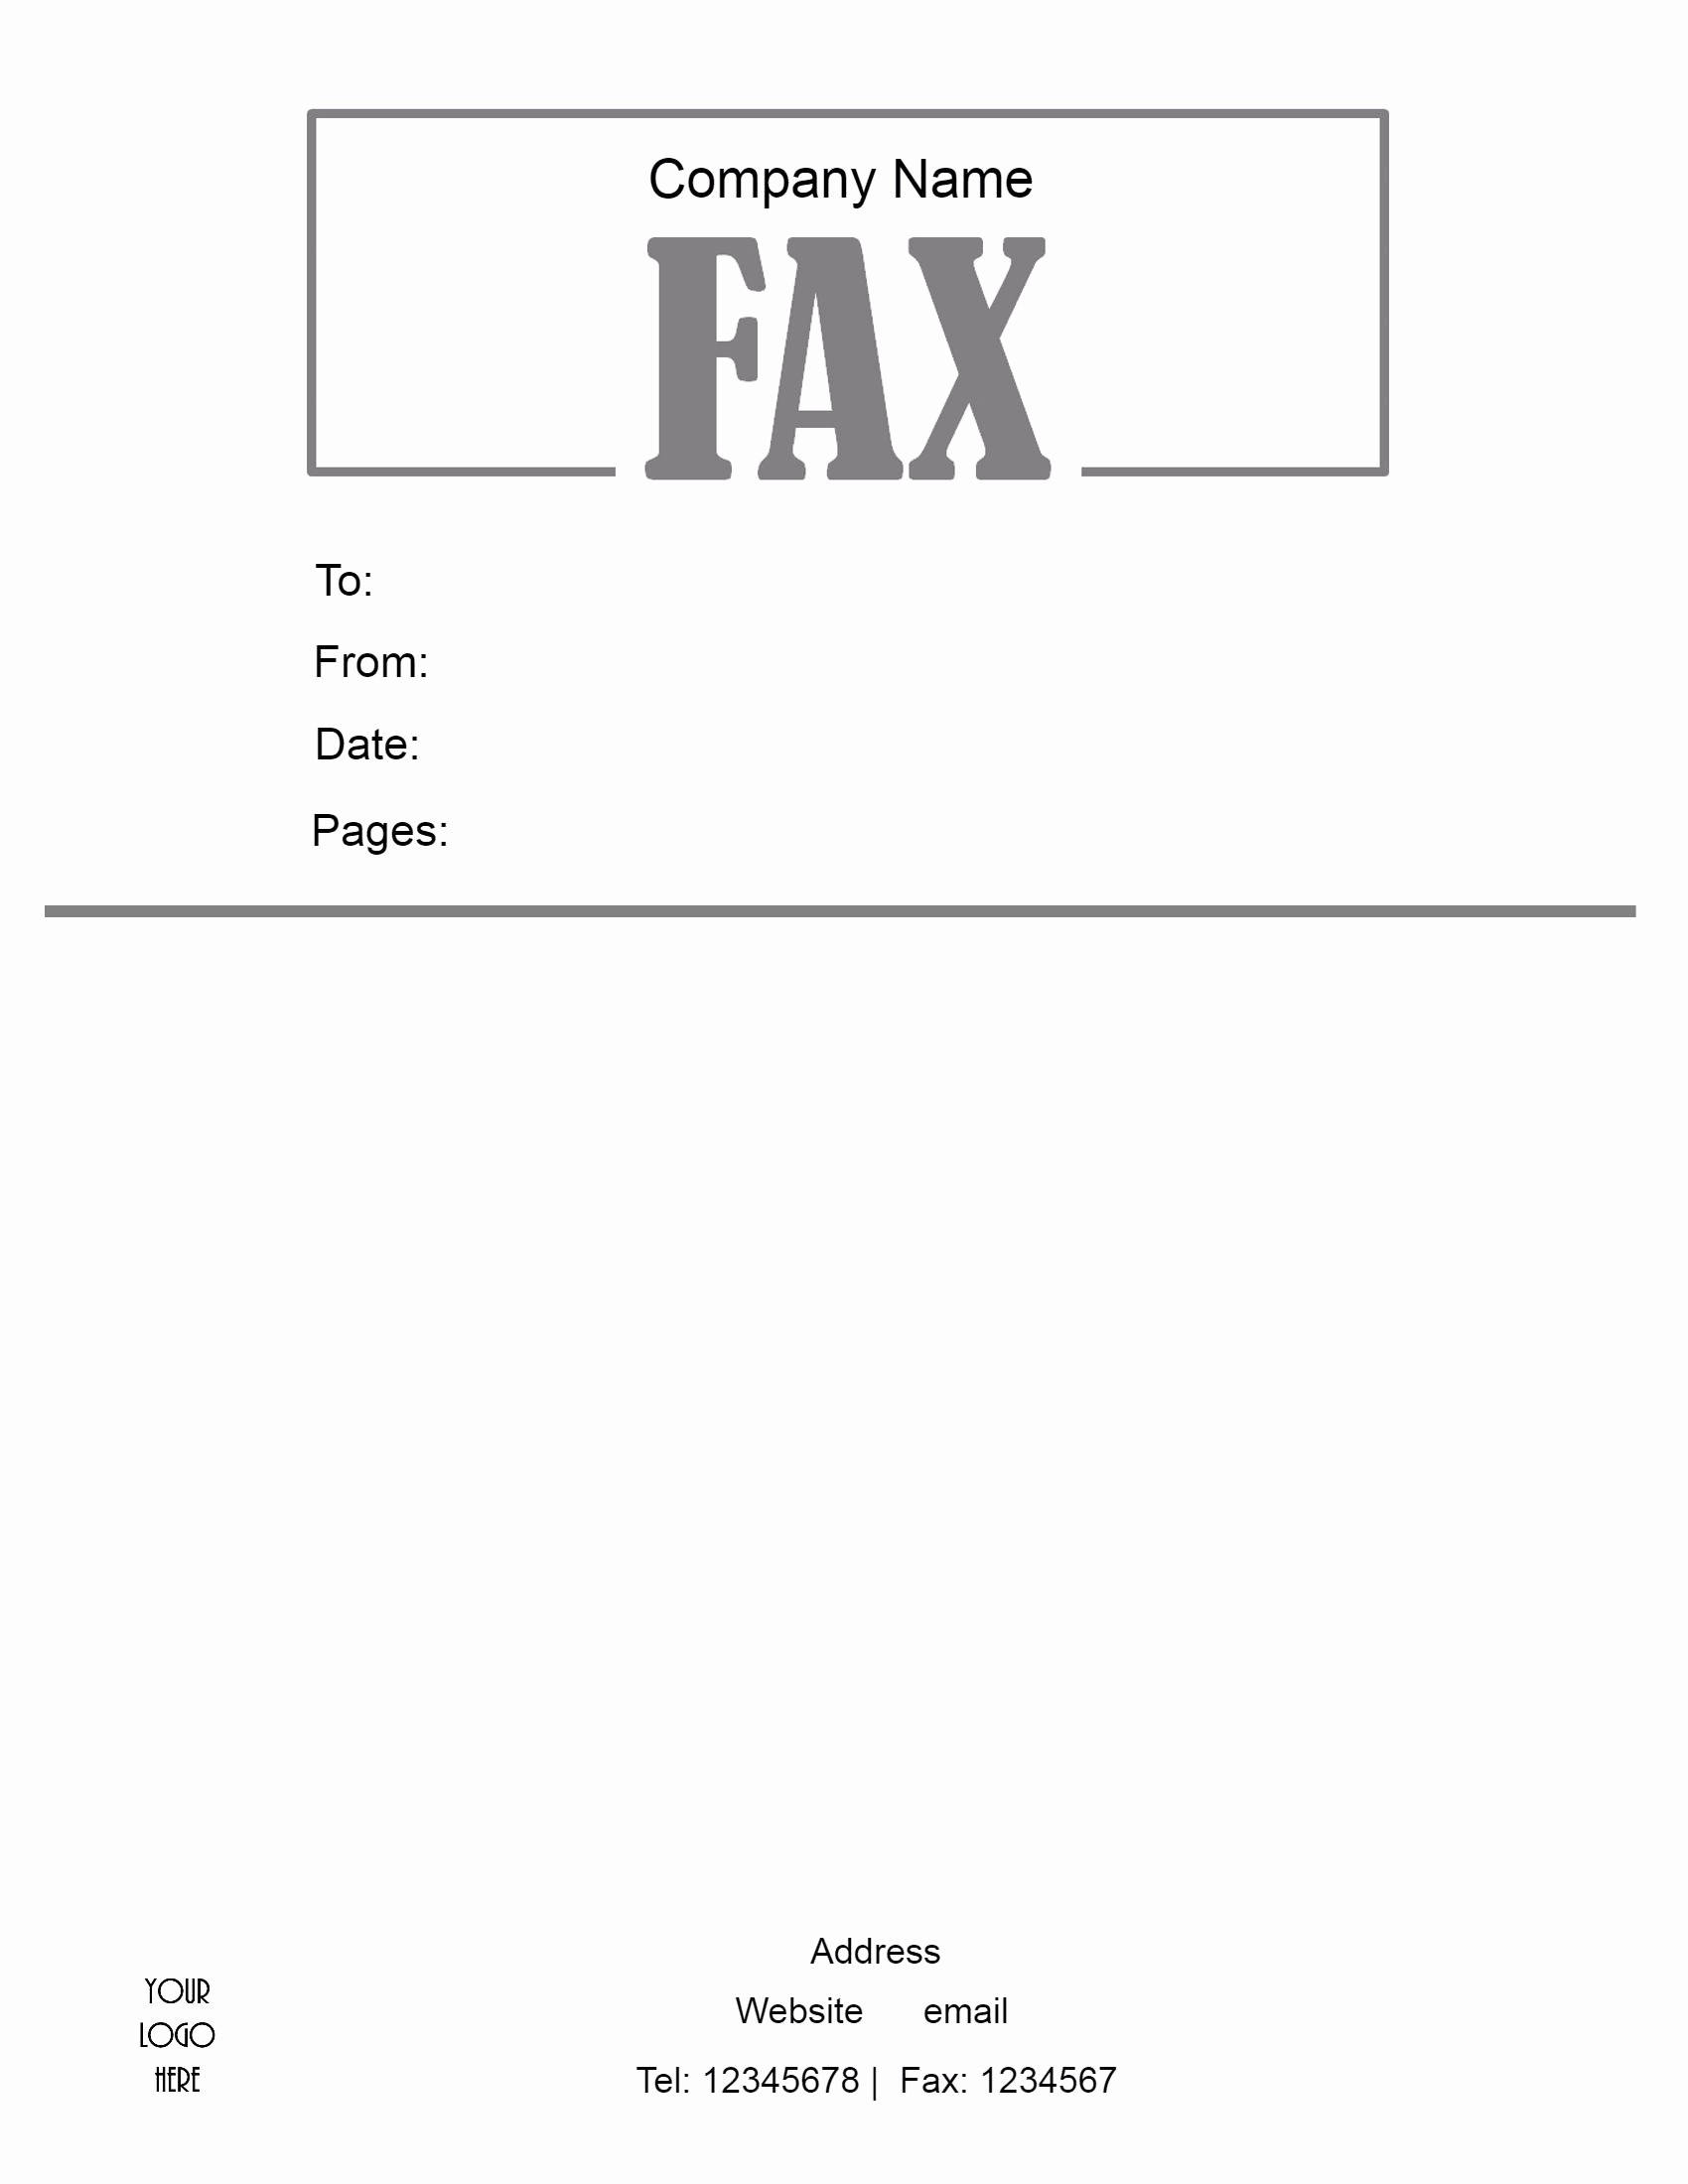 Printable Free Fax Cover Sheet Fresh Free Fax Cover Sheet Template format Example Pdf Printable